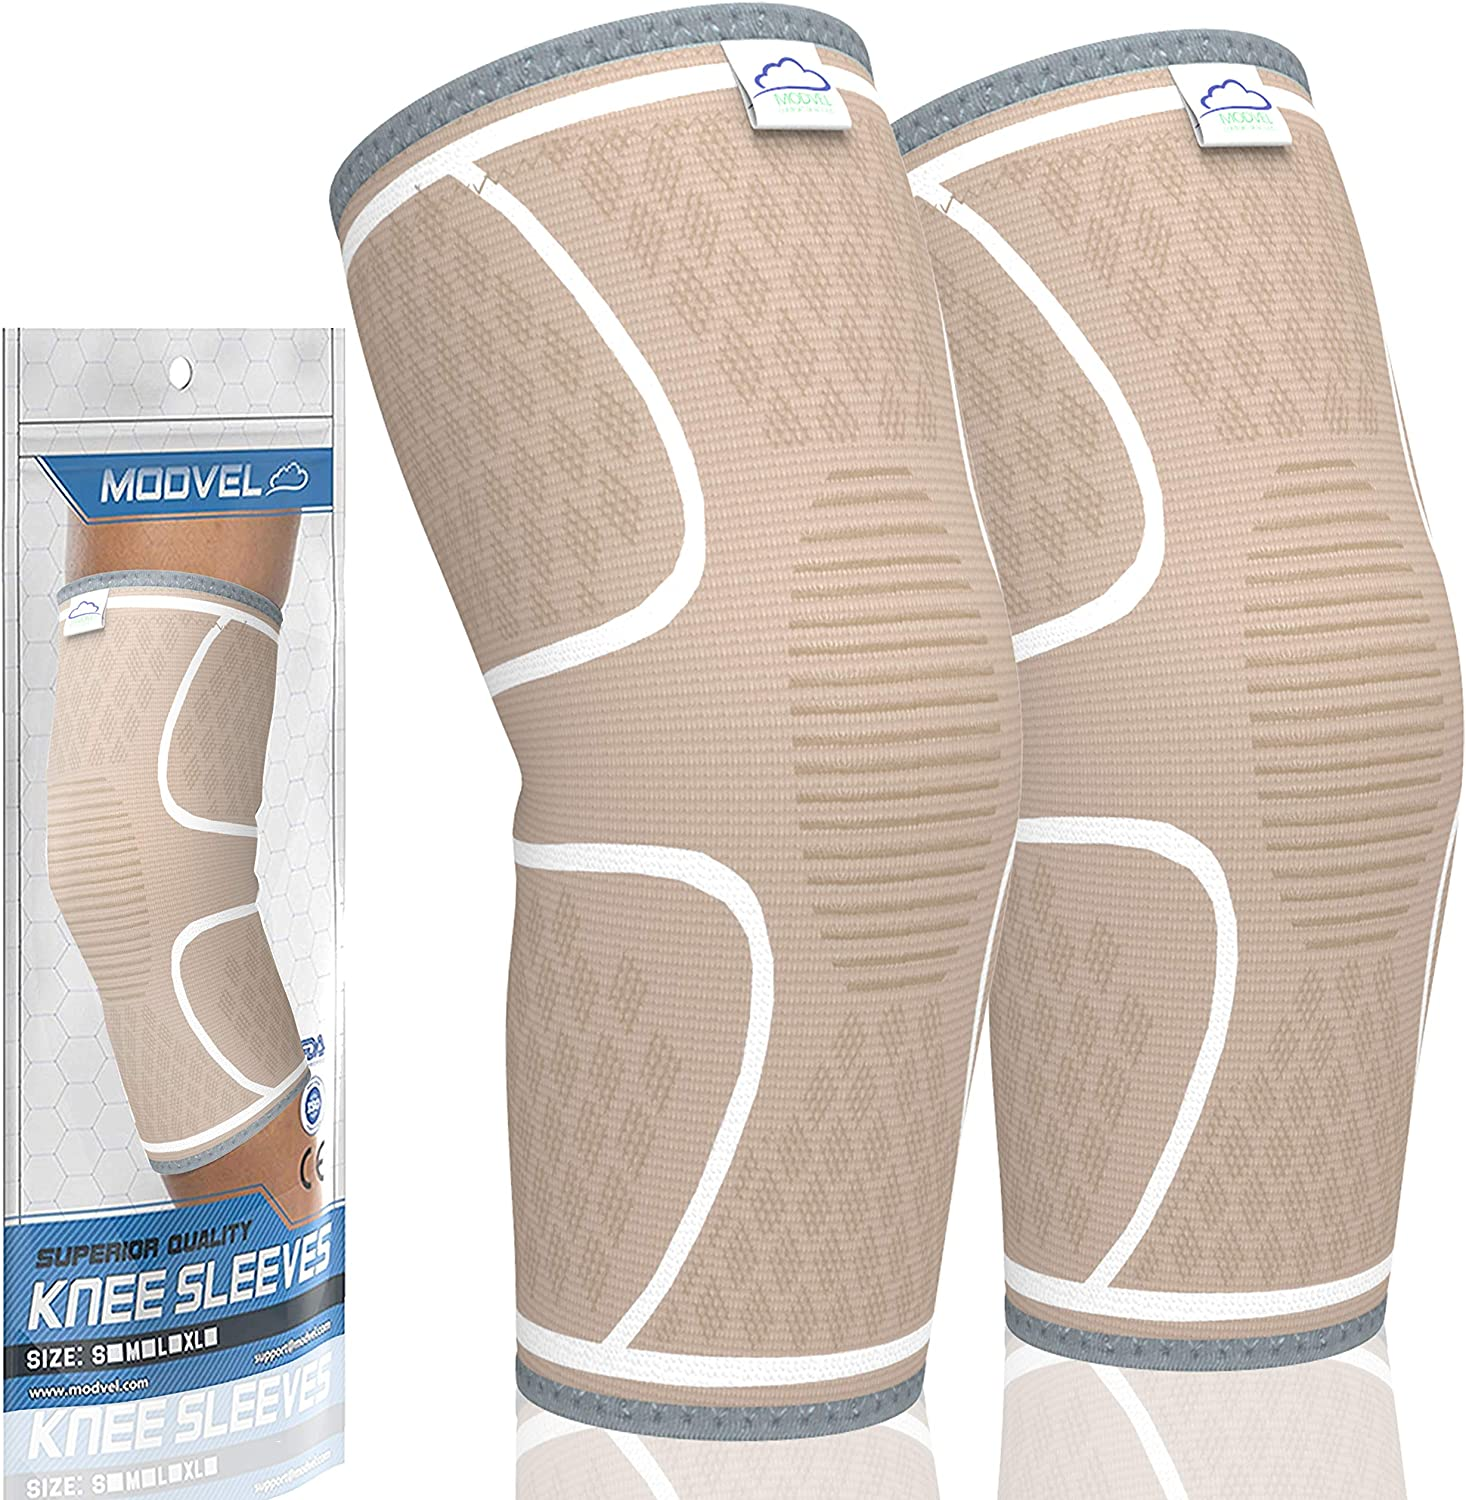 MODVEL 2 Pack Knee Brace | Knee Compression Sleeve for Men & Women | Knee Support for Running | Medical Grade Knee Pads for Meniscus Tear, ACL, Arthritis, Joint Pain Relief.: Health & Personal Care